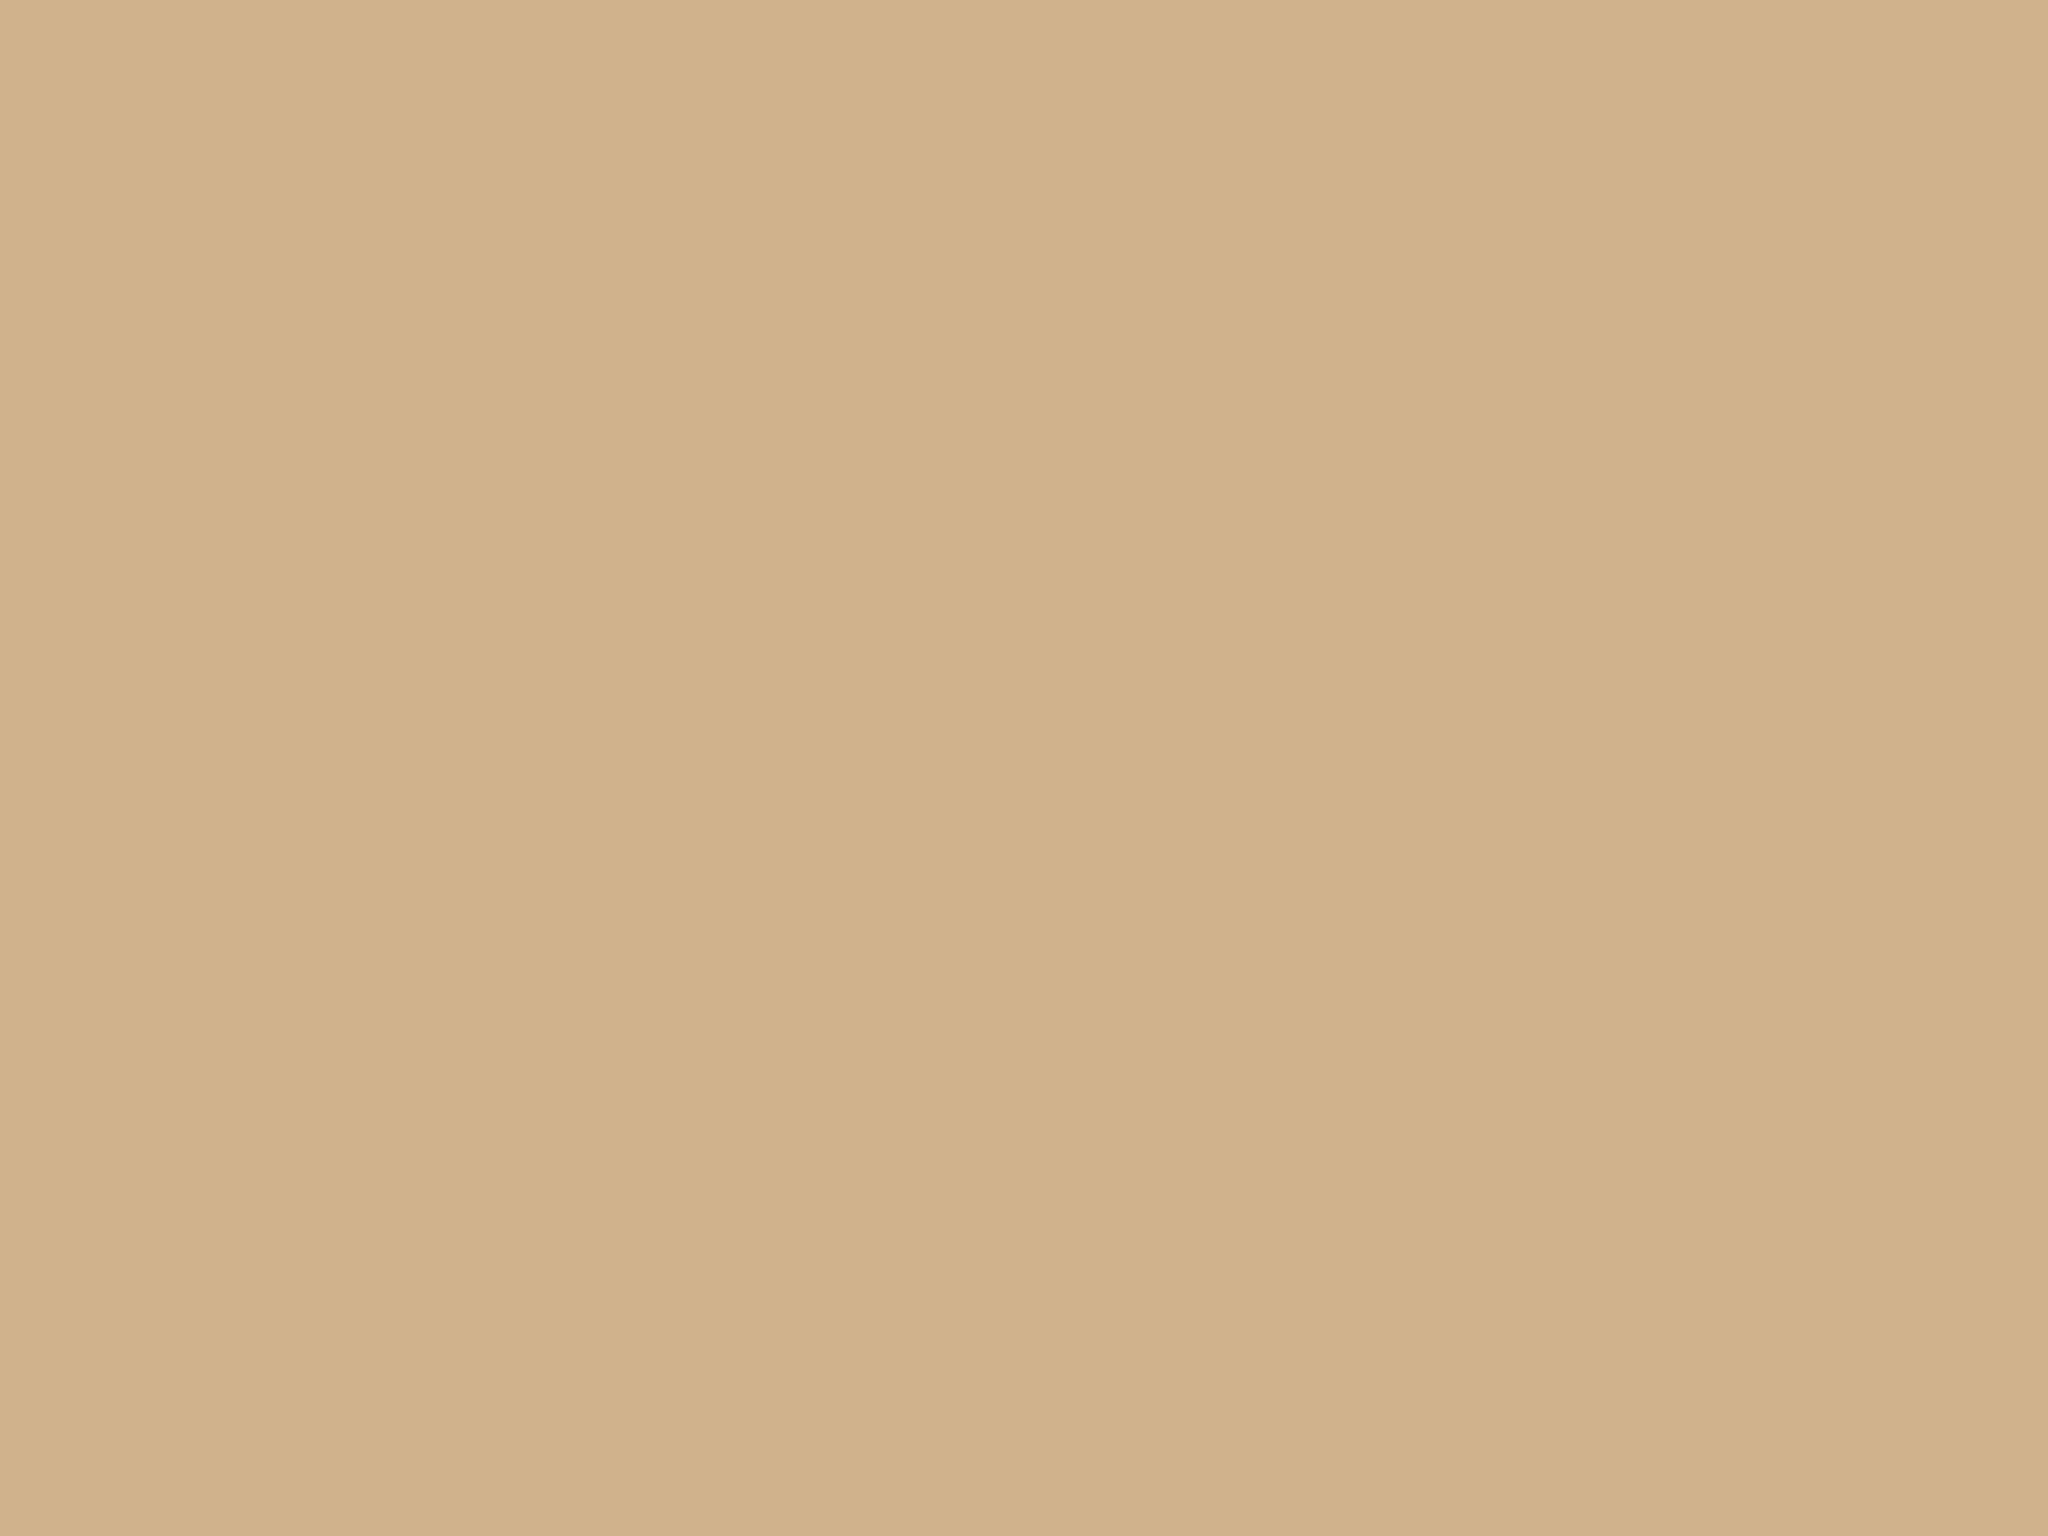 2048x1536 Tan Solid Color Background